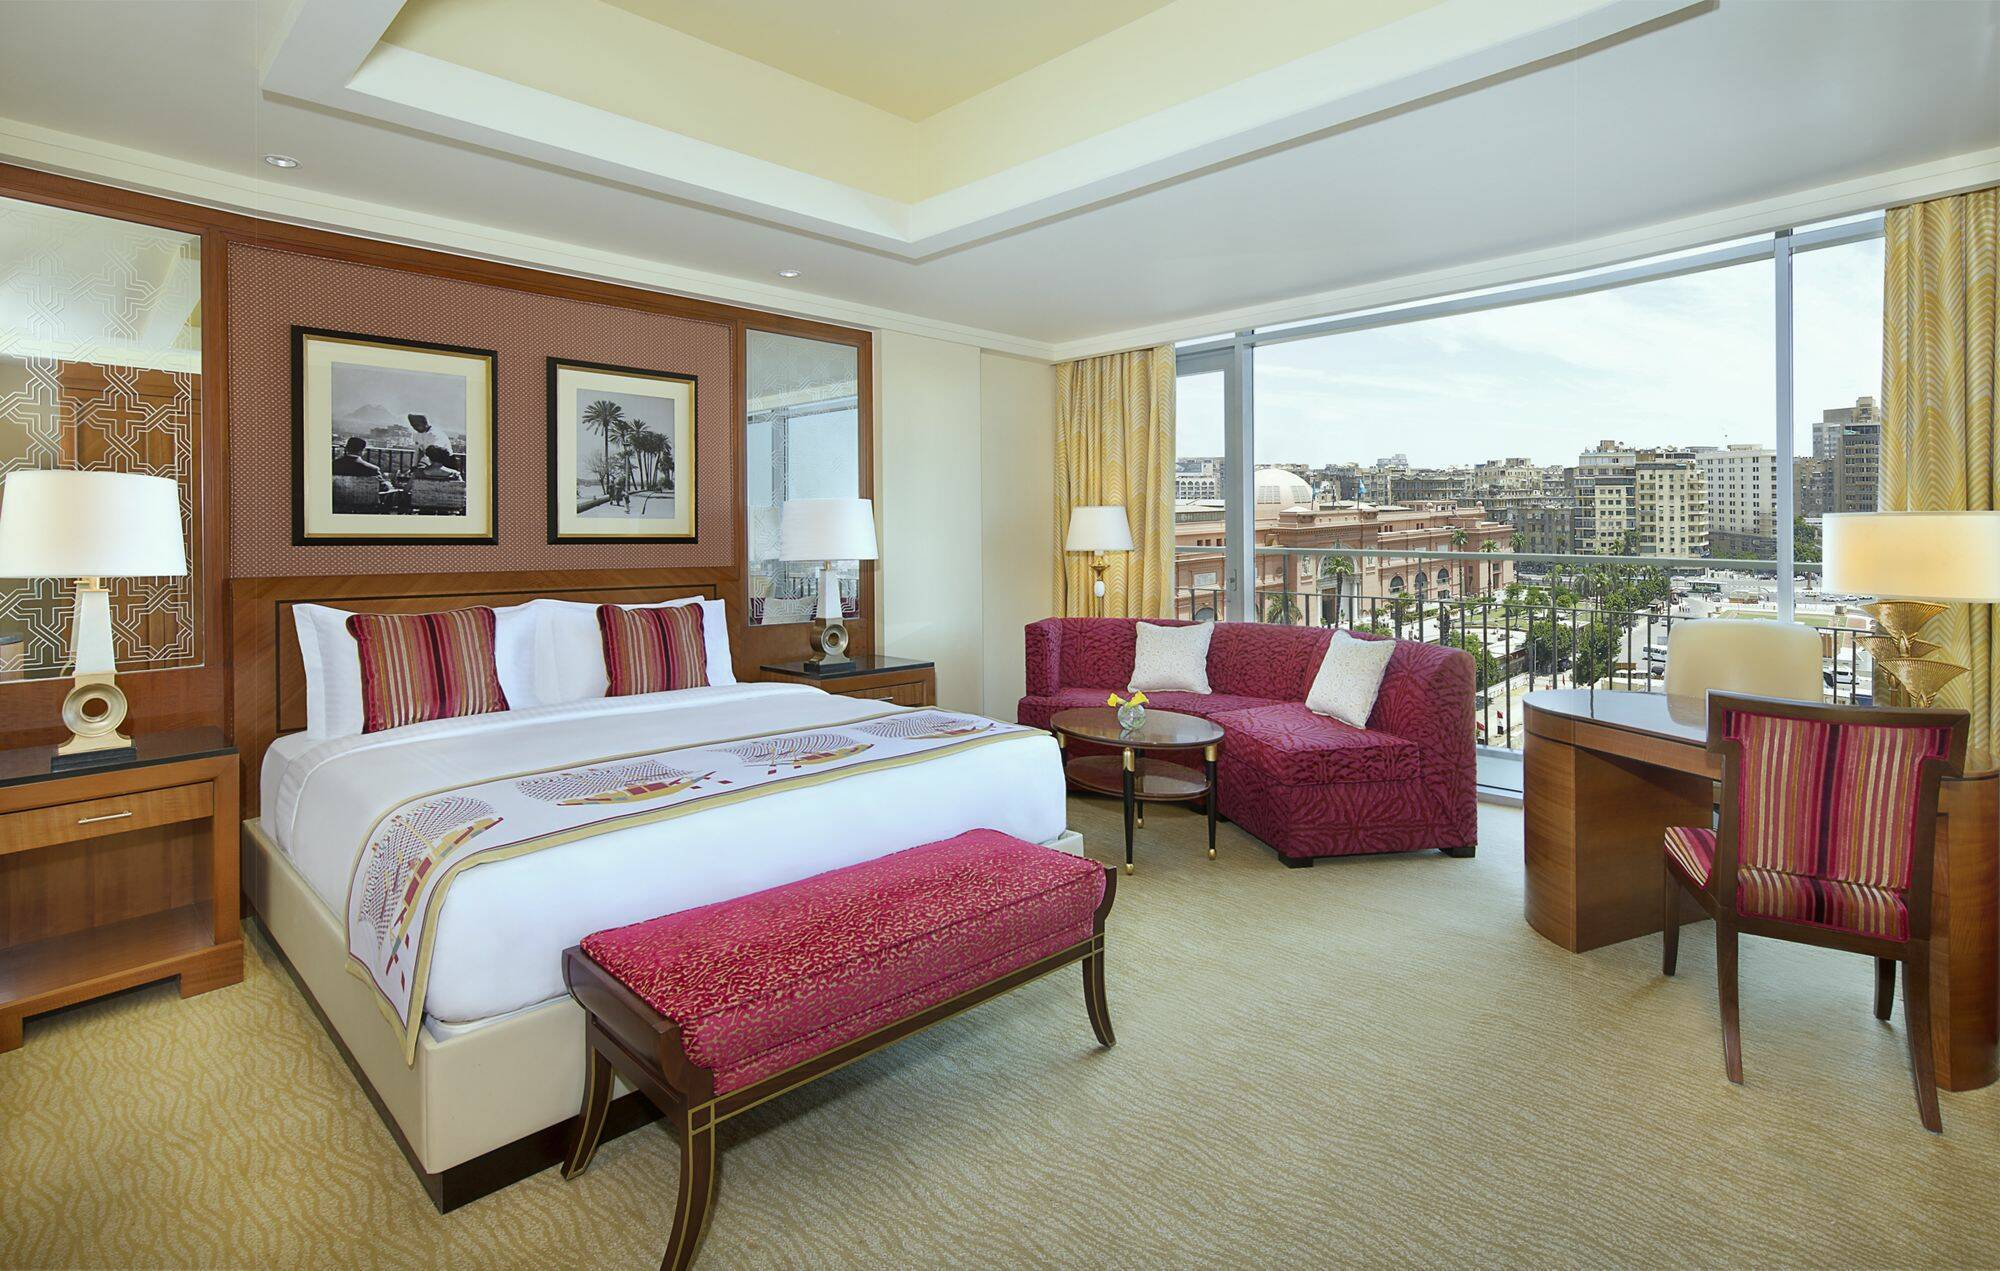 Caire The Nile Ritz Carlton chambre deluxe Circuit Egypte